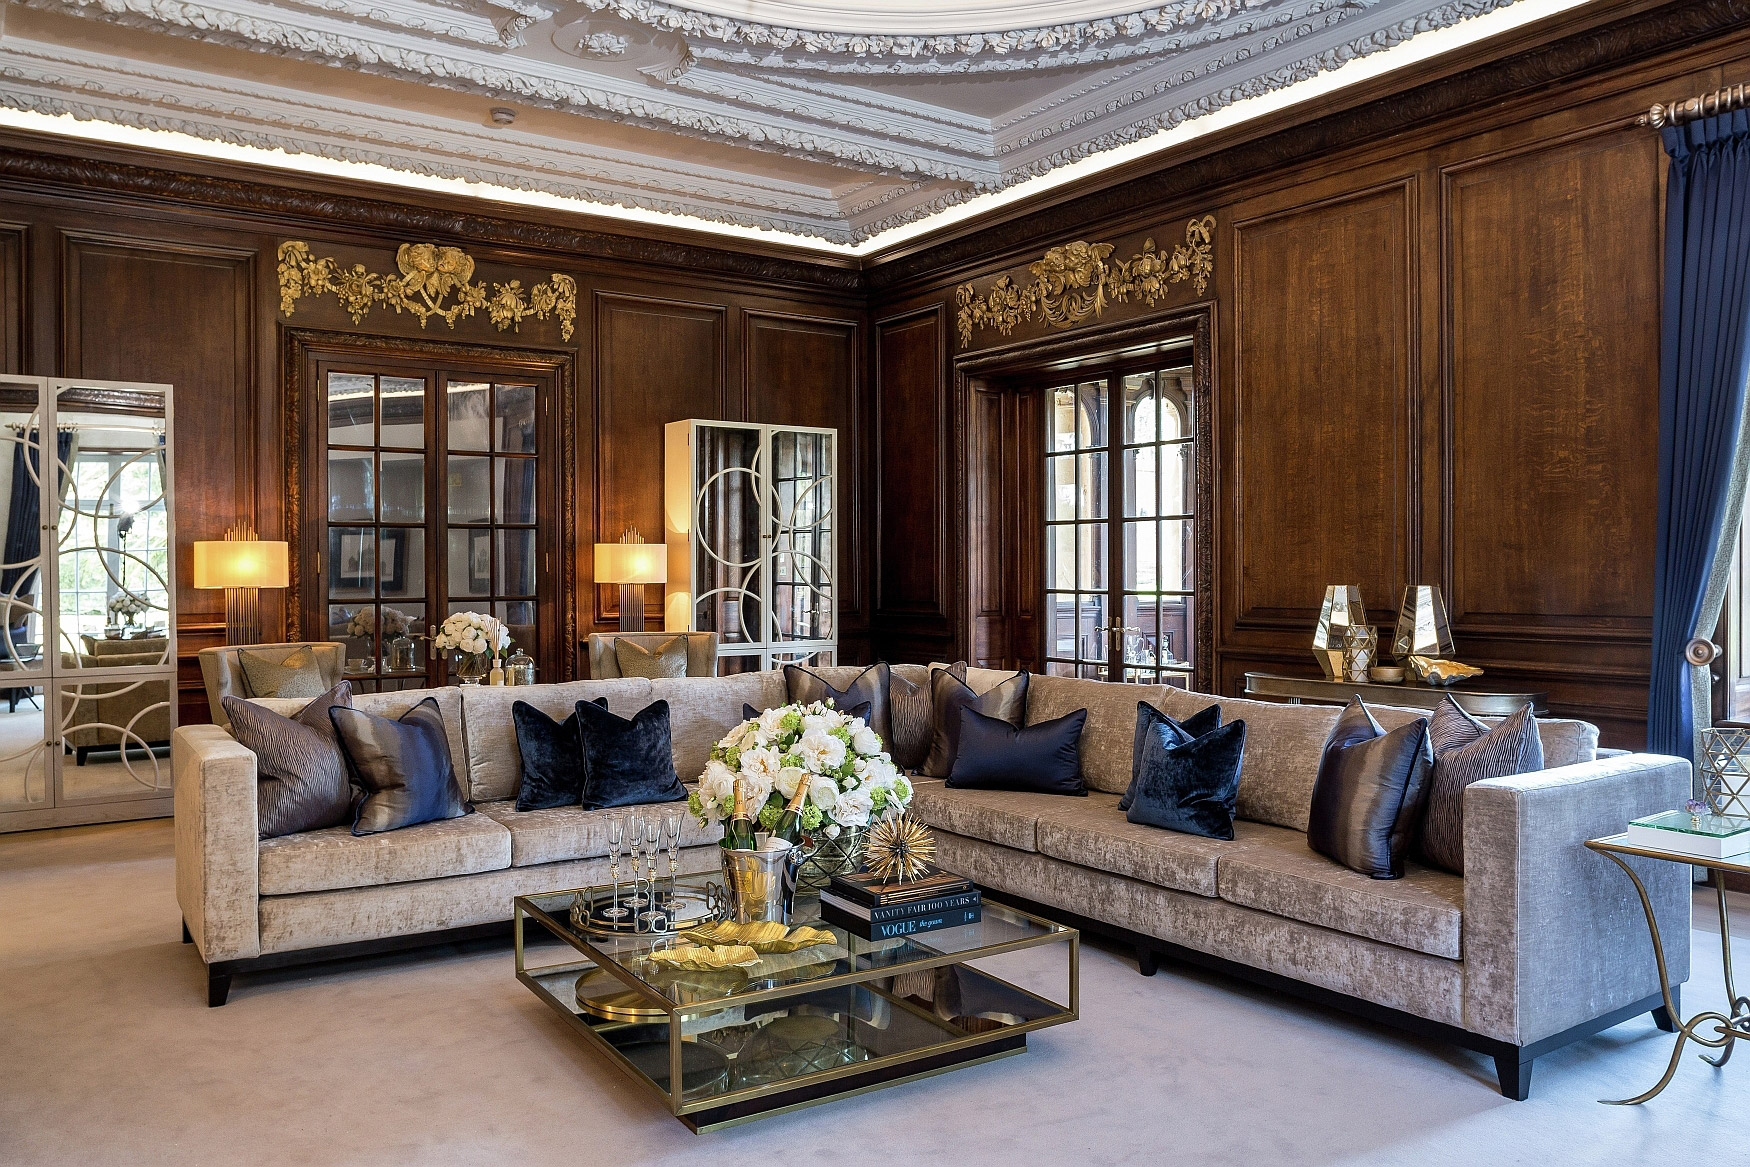 Millgate's Woolley Hall Wins At British Homes Awards